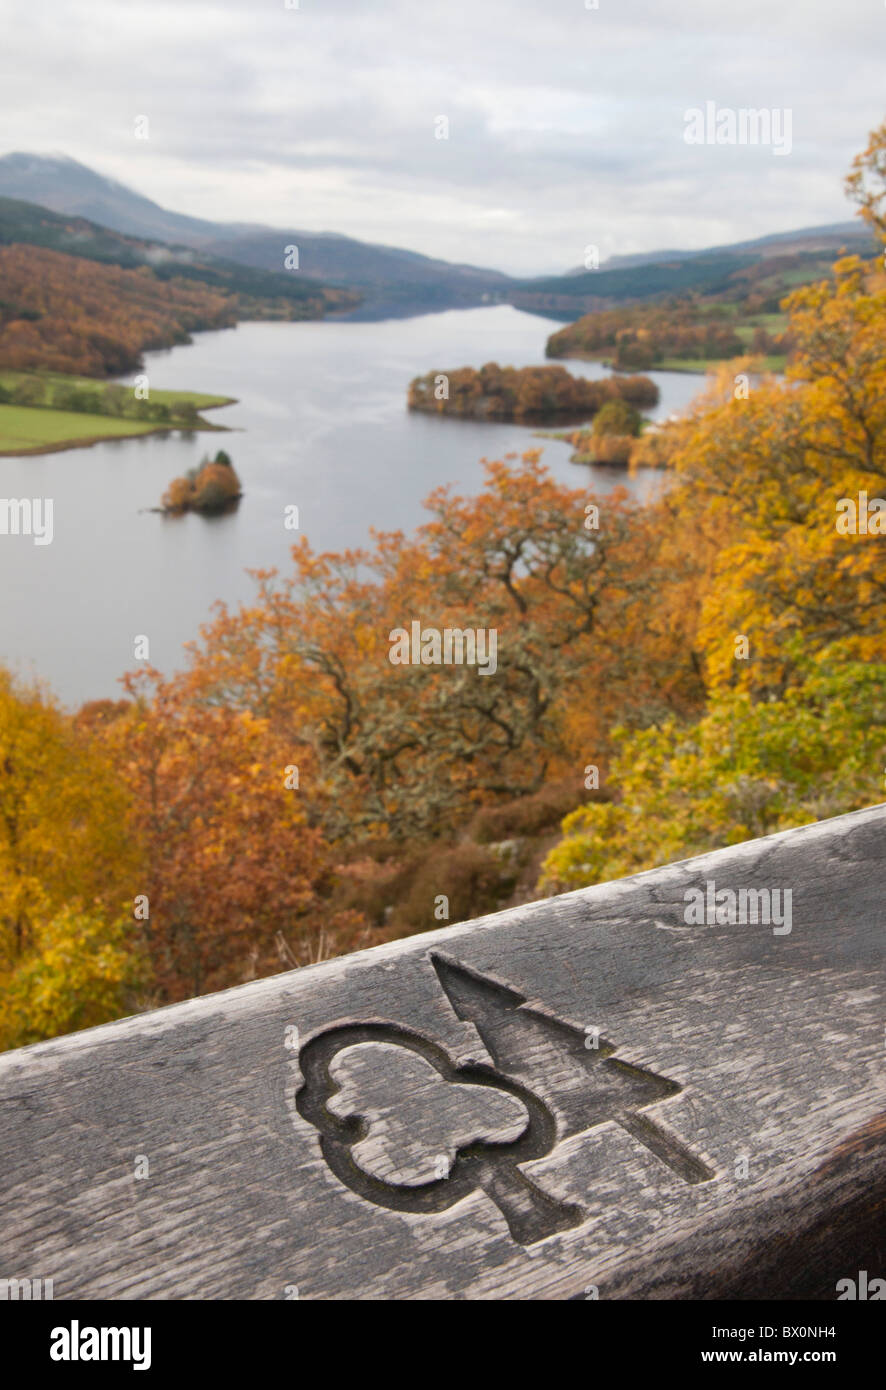 Forestry Commission Scotland Logo foreground. Loch Tummel aka 'Queens View' oof background. - Stock Image